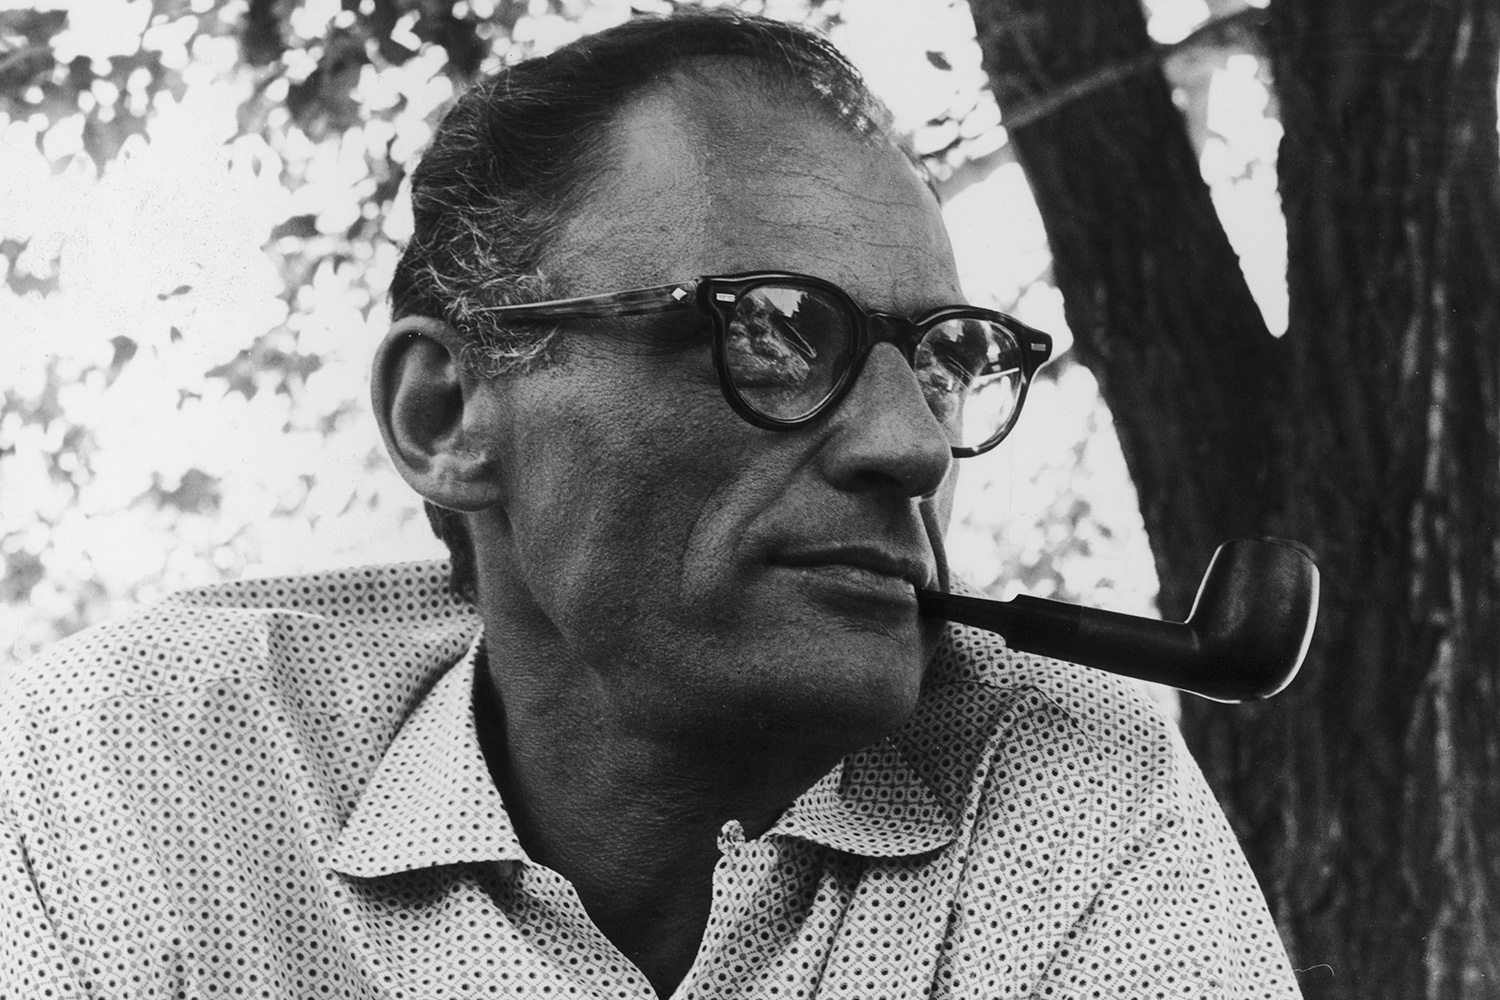 arthur miller essay am biography the arthur miller society essay  am biography the arthur miller society a brief chronology of arthur miller s life and works